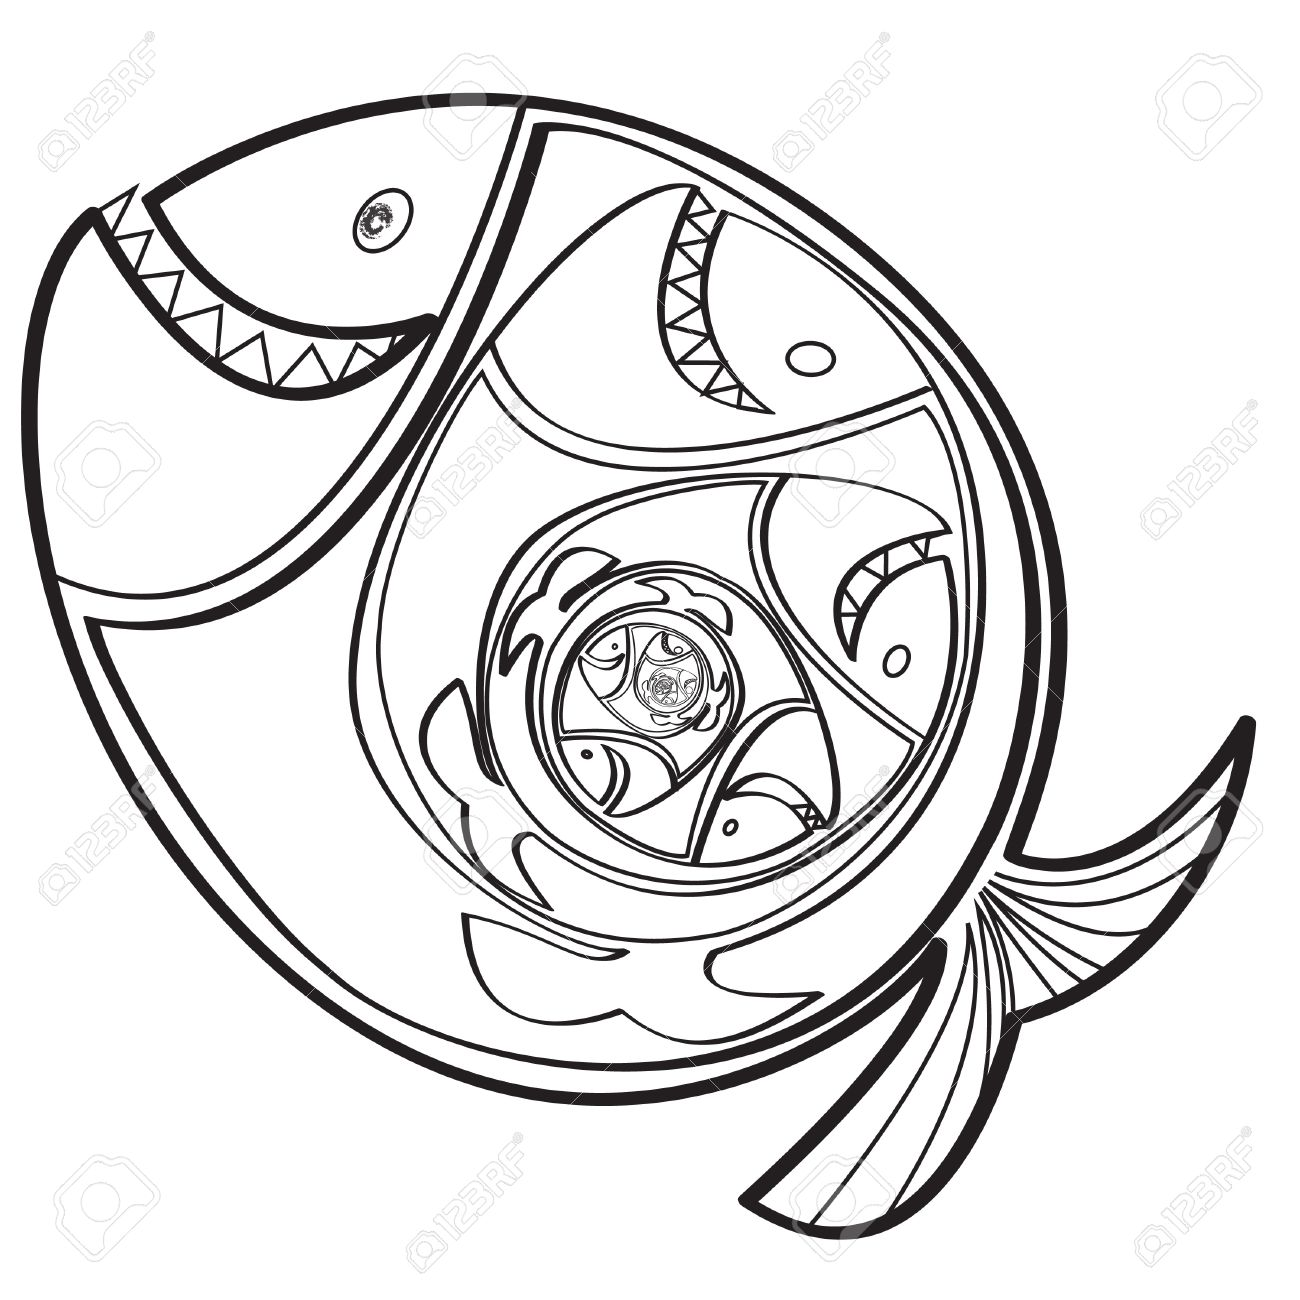 Fish Eating Fish Cartoon Big Fish Eating a Little Fish